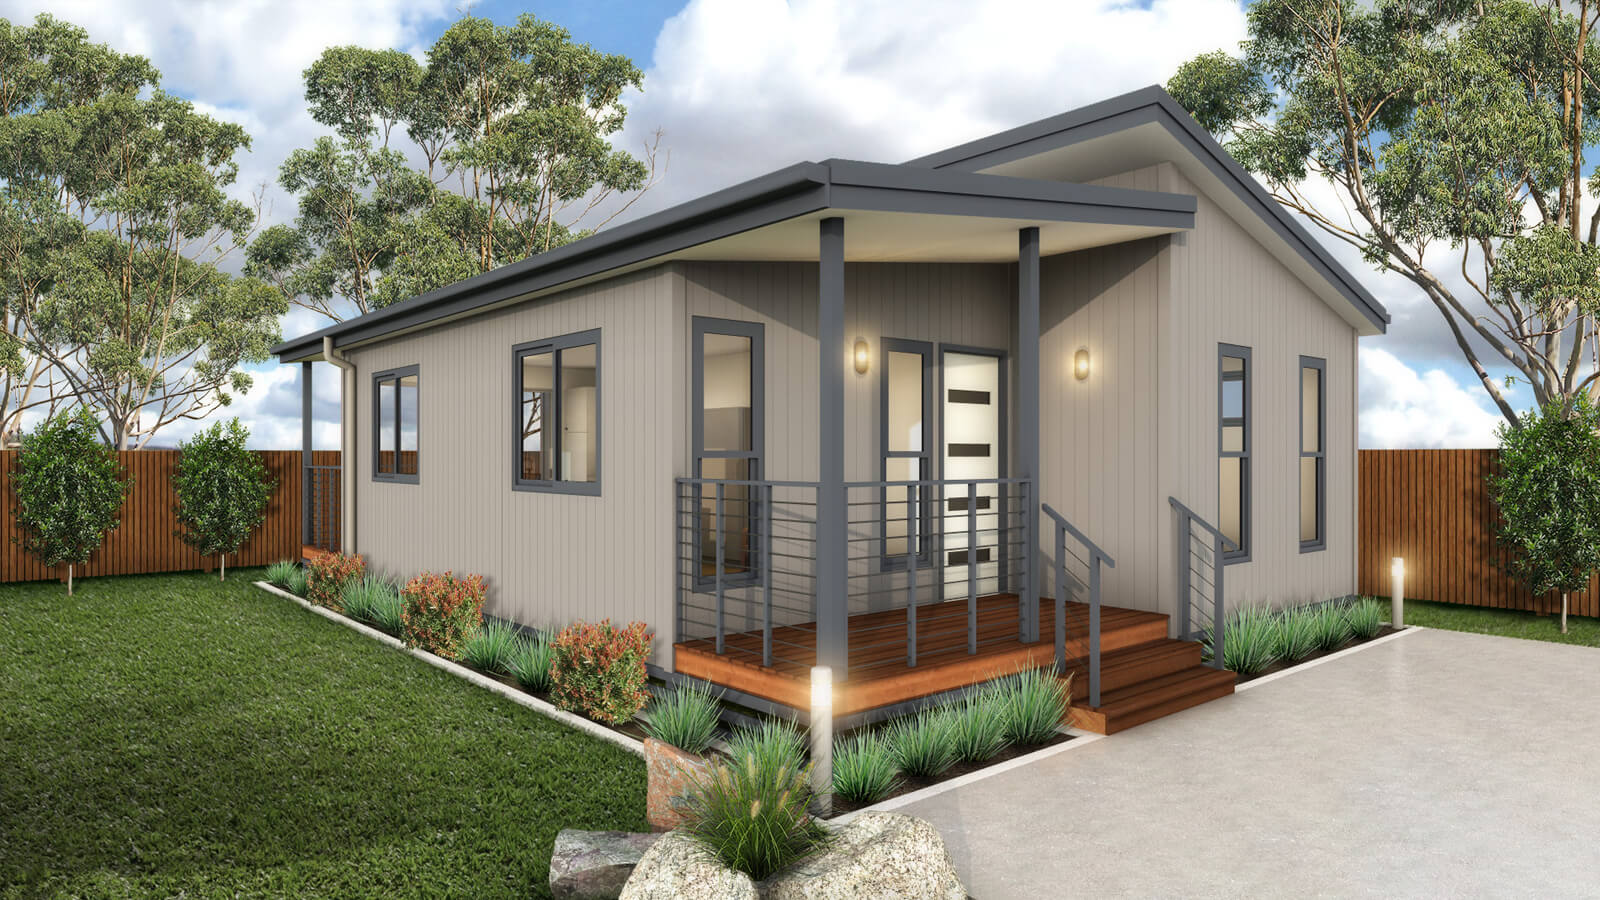 The bribie granny flat park cabin residential home for Portable home designs